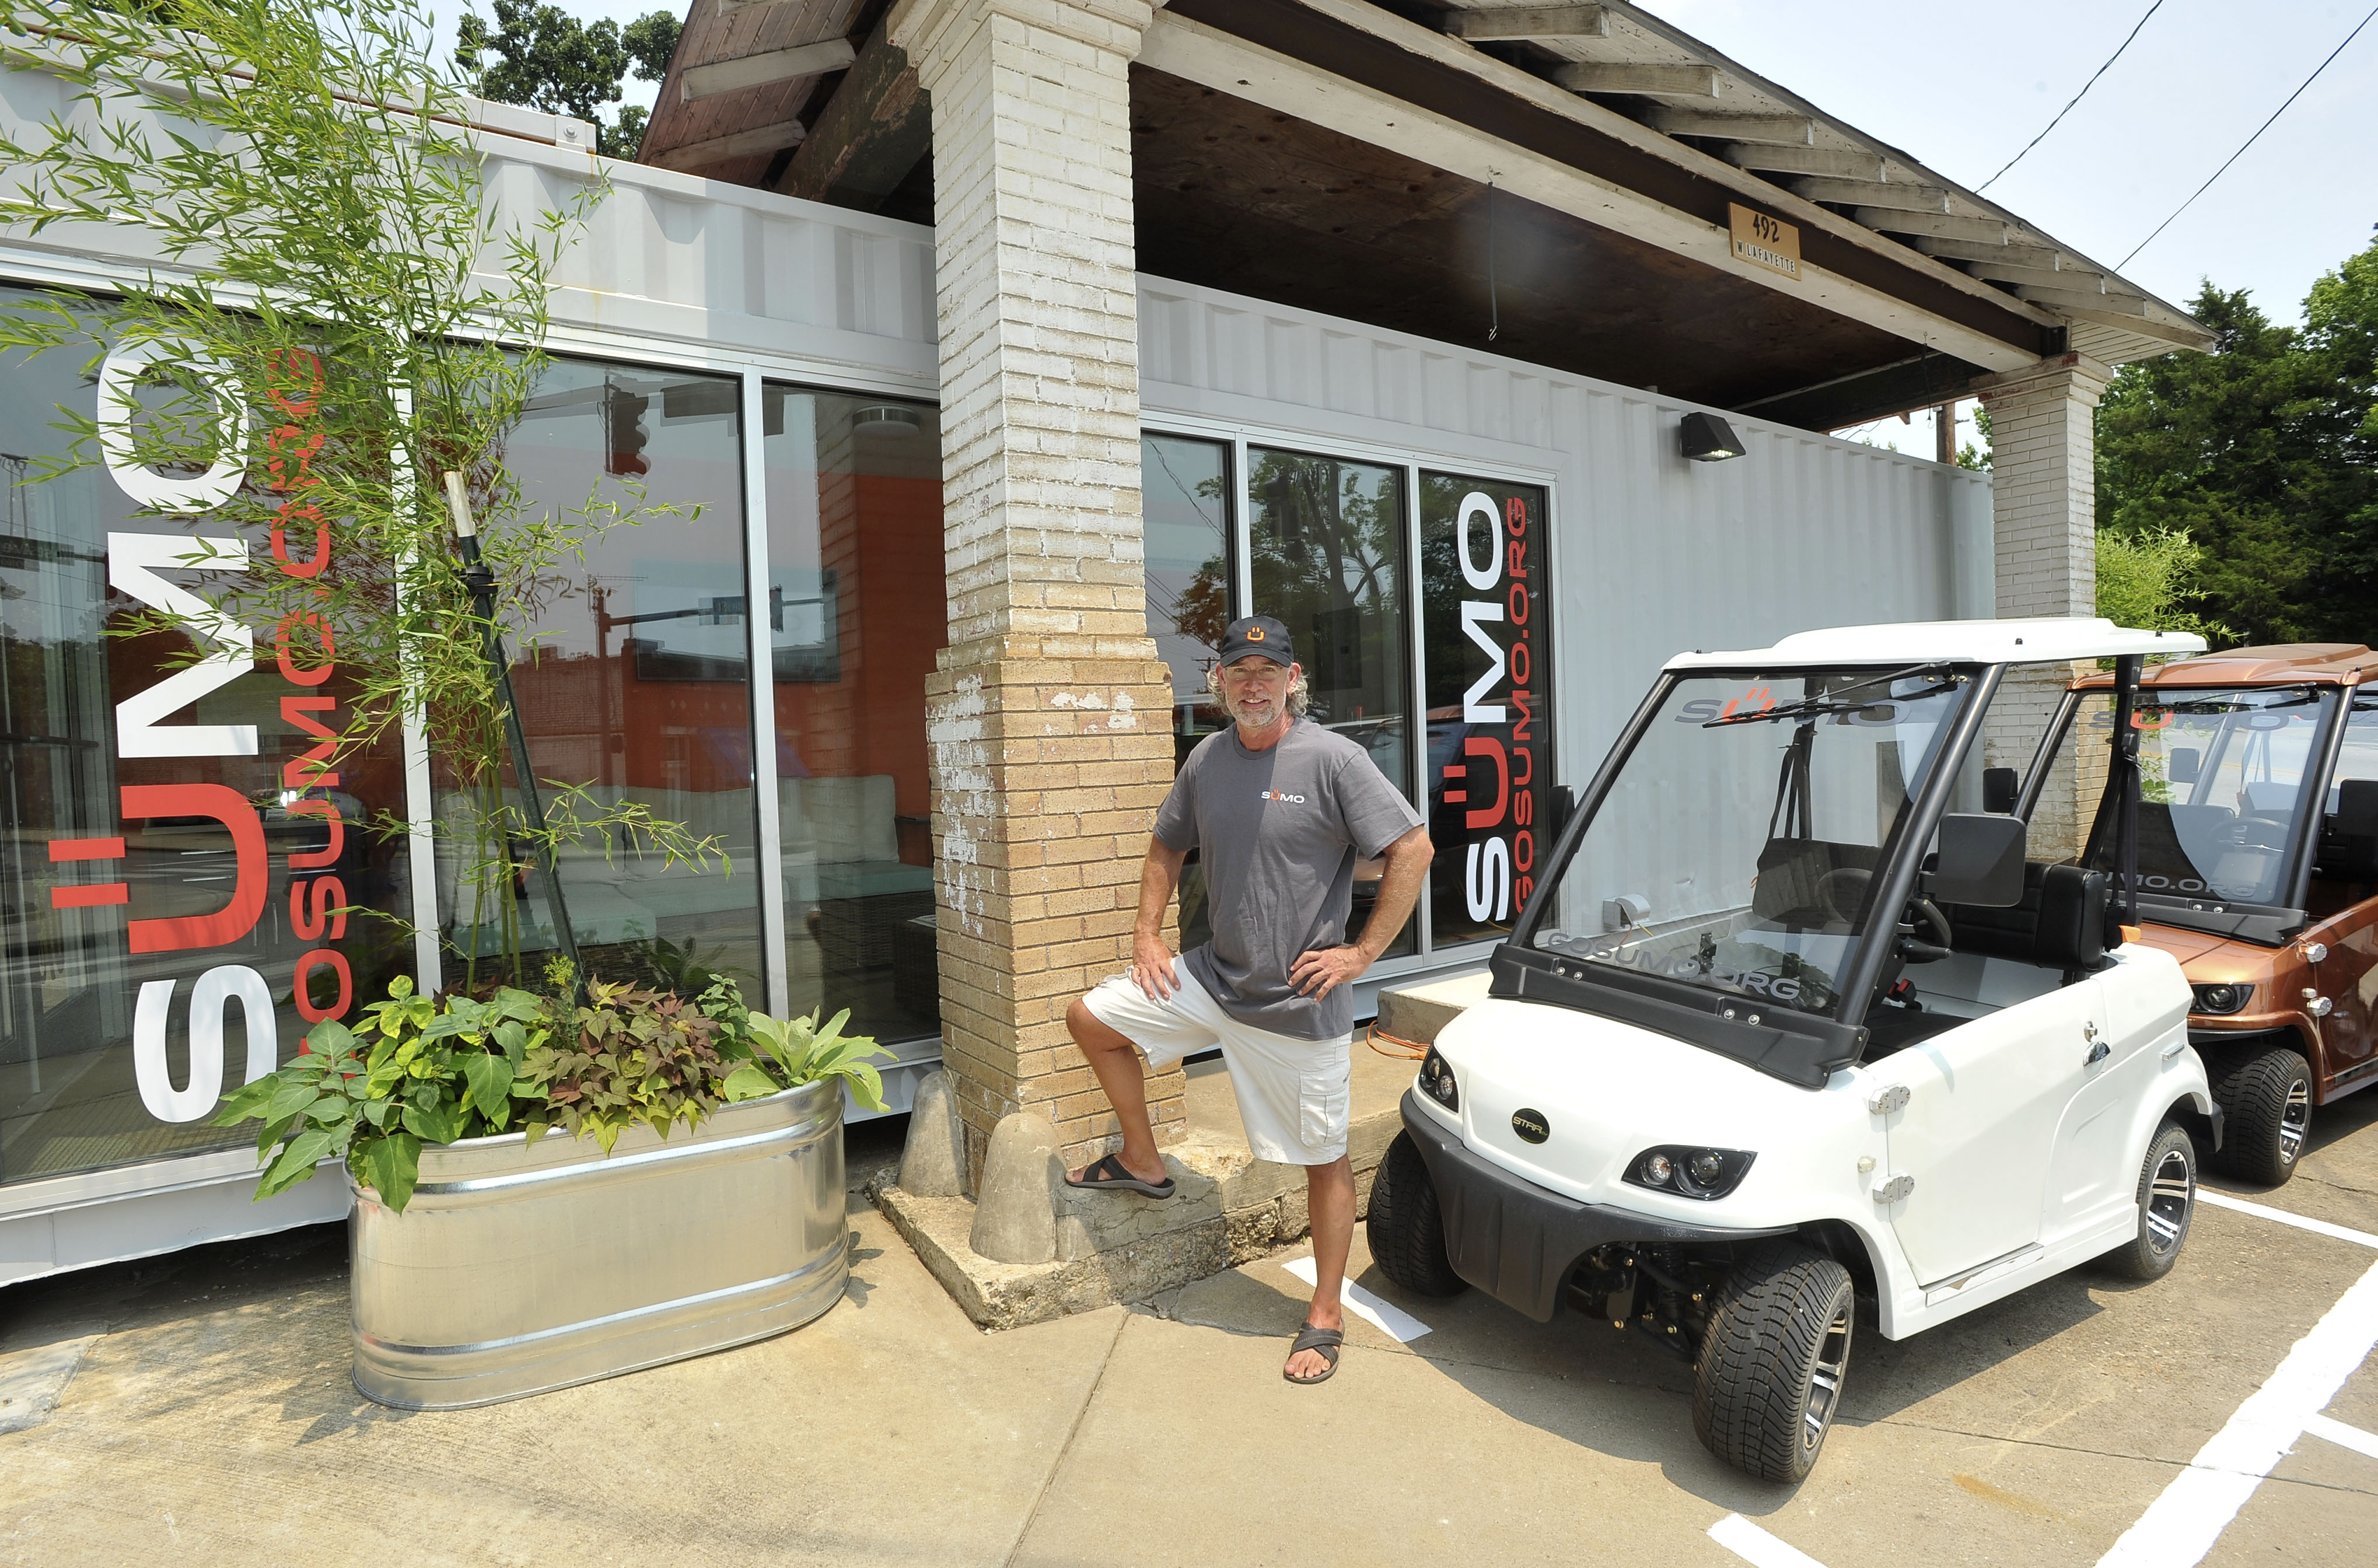 Fayetteville car sharing business kicks off using low-speed electric vehicles